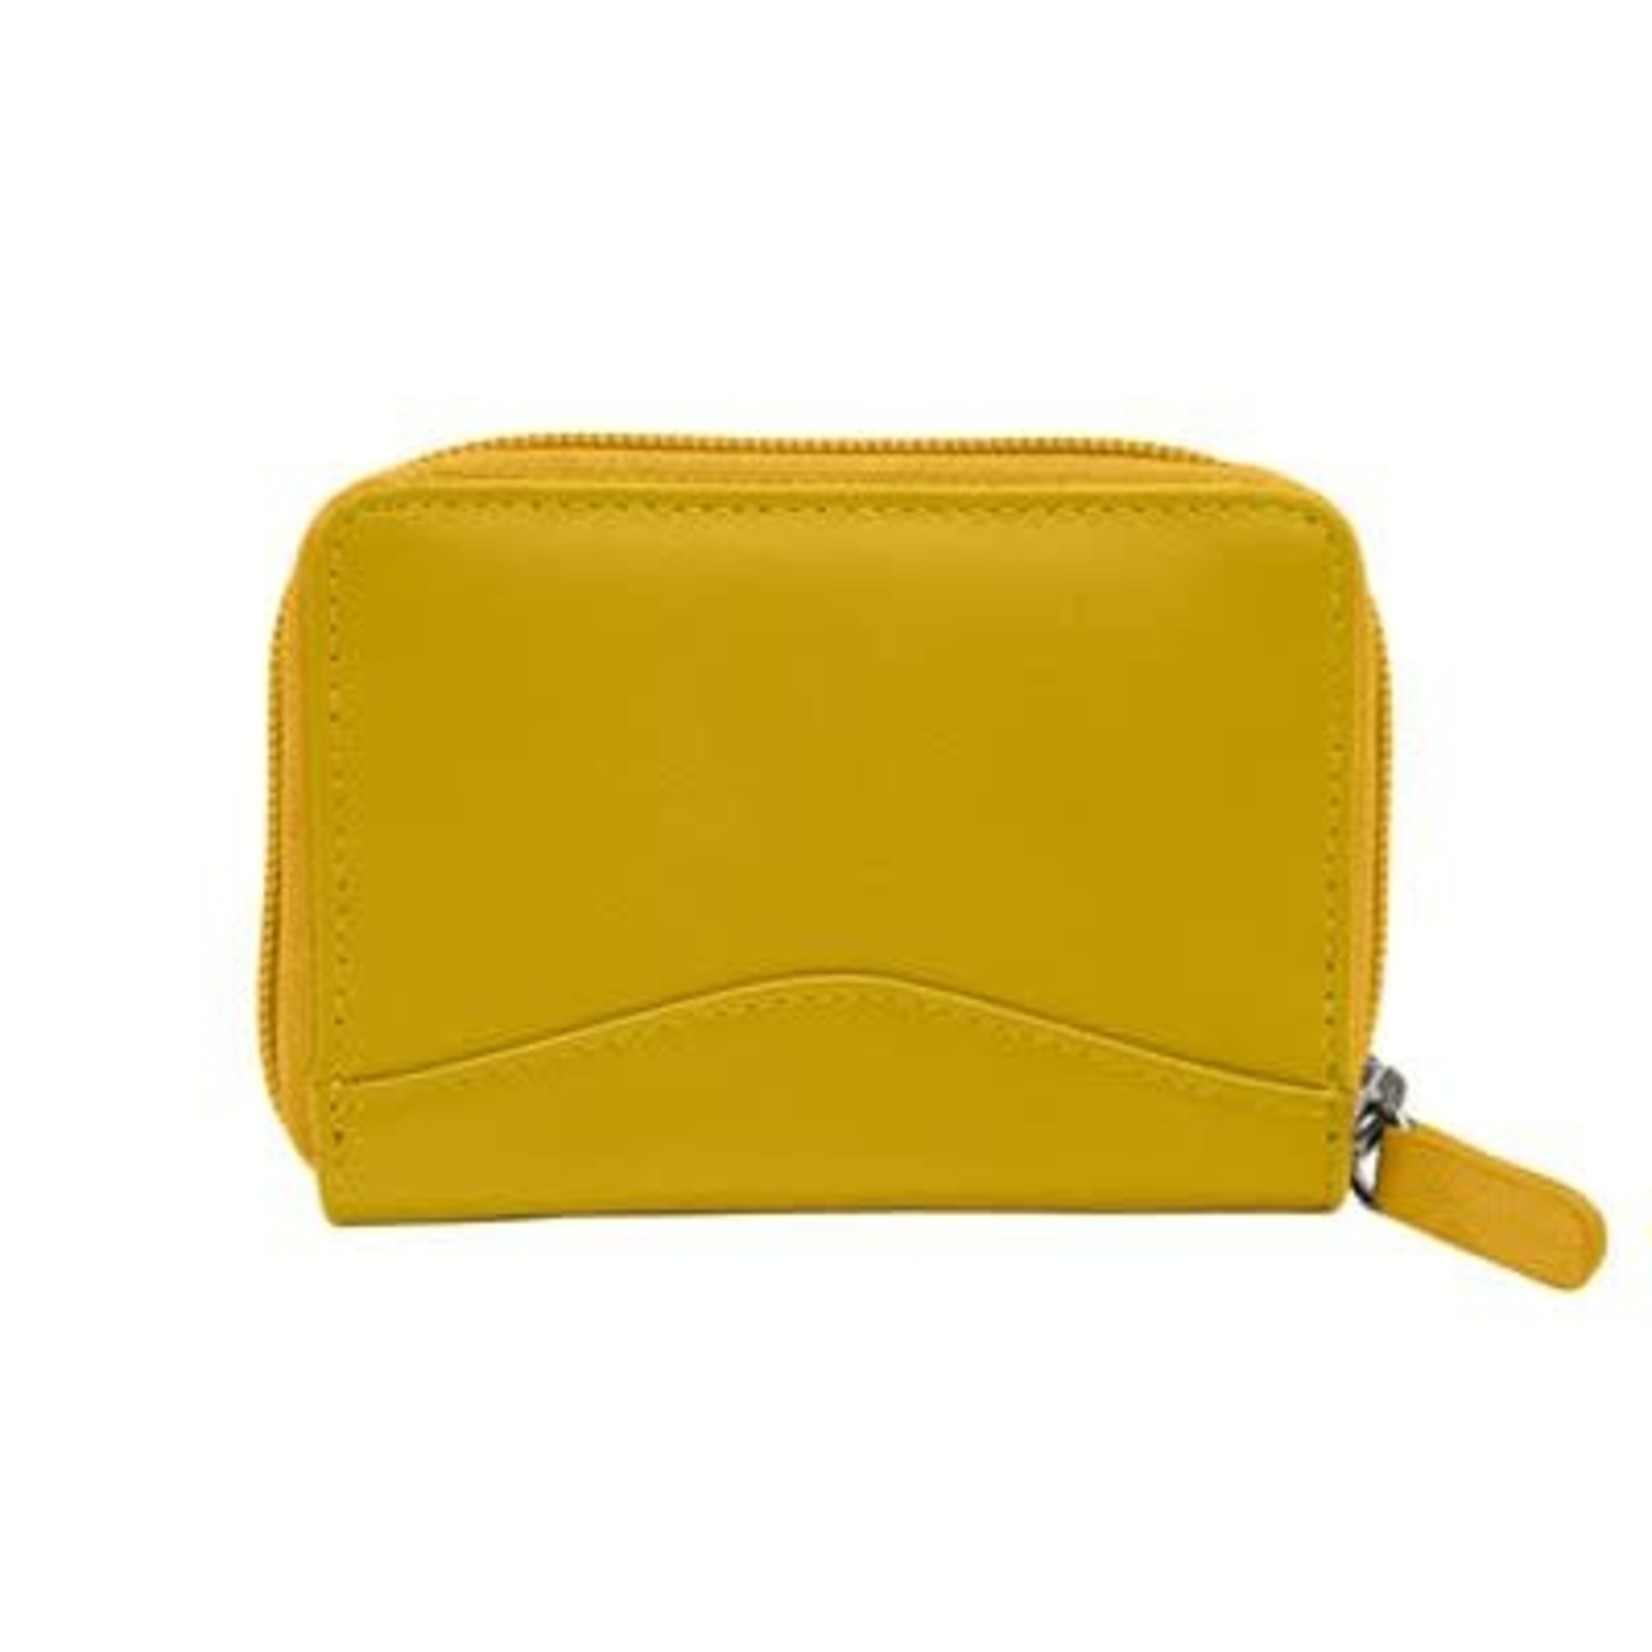 Leather Handbags and Accessories 6711 Yellow - Accordion Card Holder